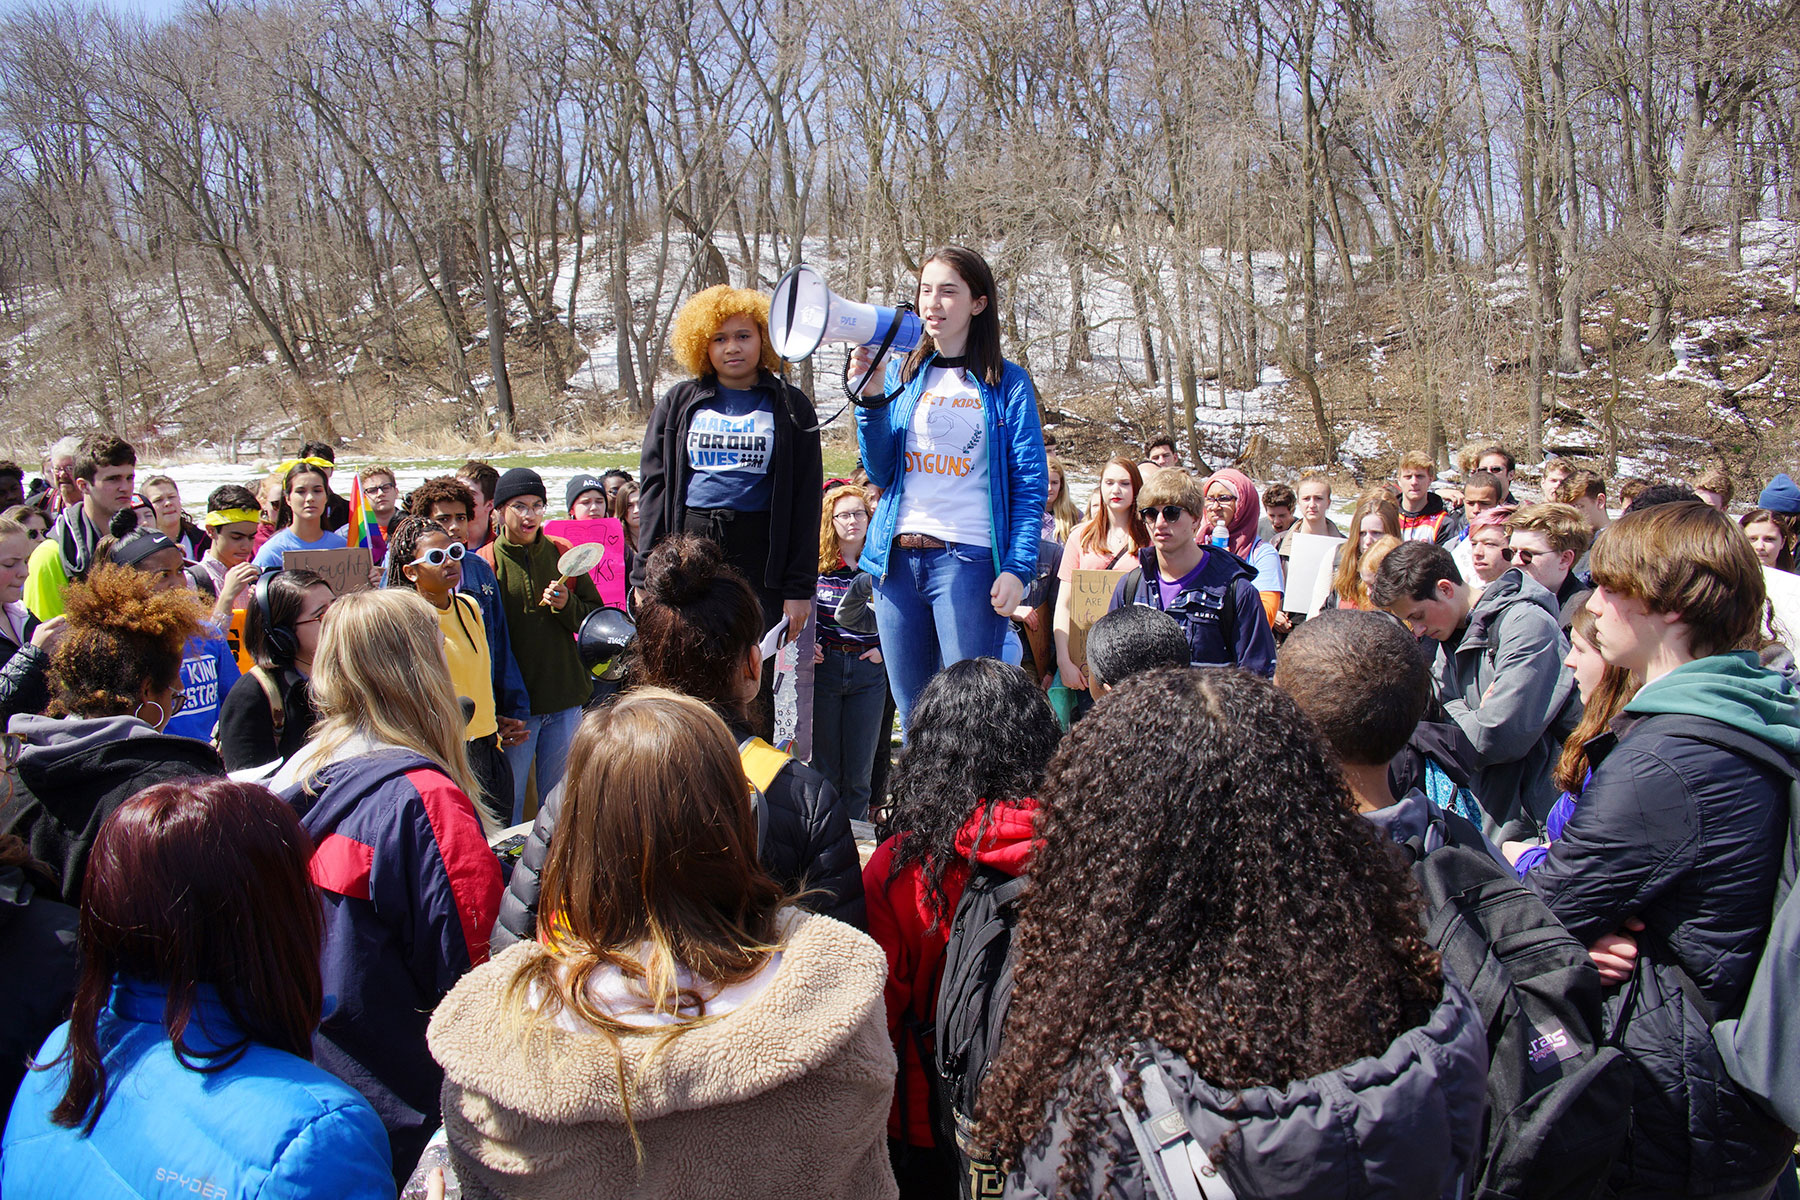 Students Walk Out To Push For Gun Control